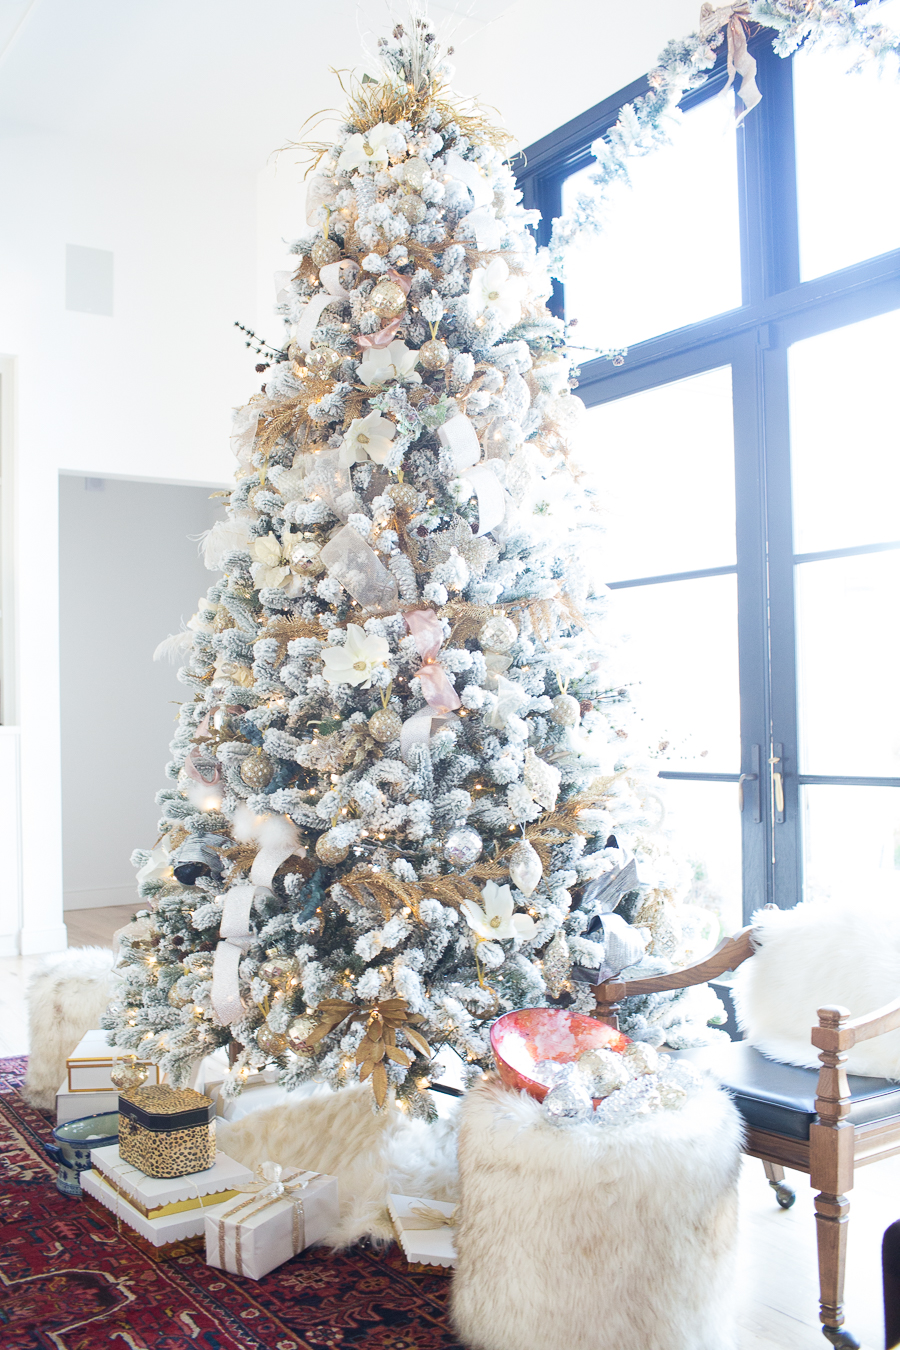 10 Tips For Budget Christmas Decorating Cc And Mike Lifestyle And Design Blog